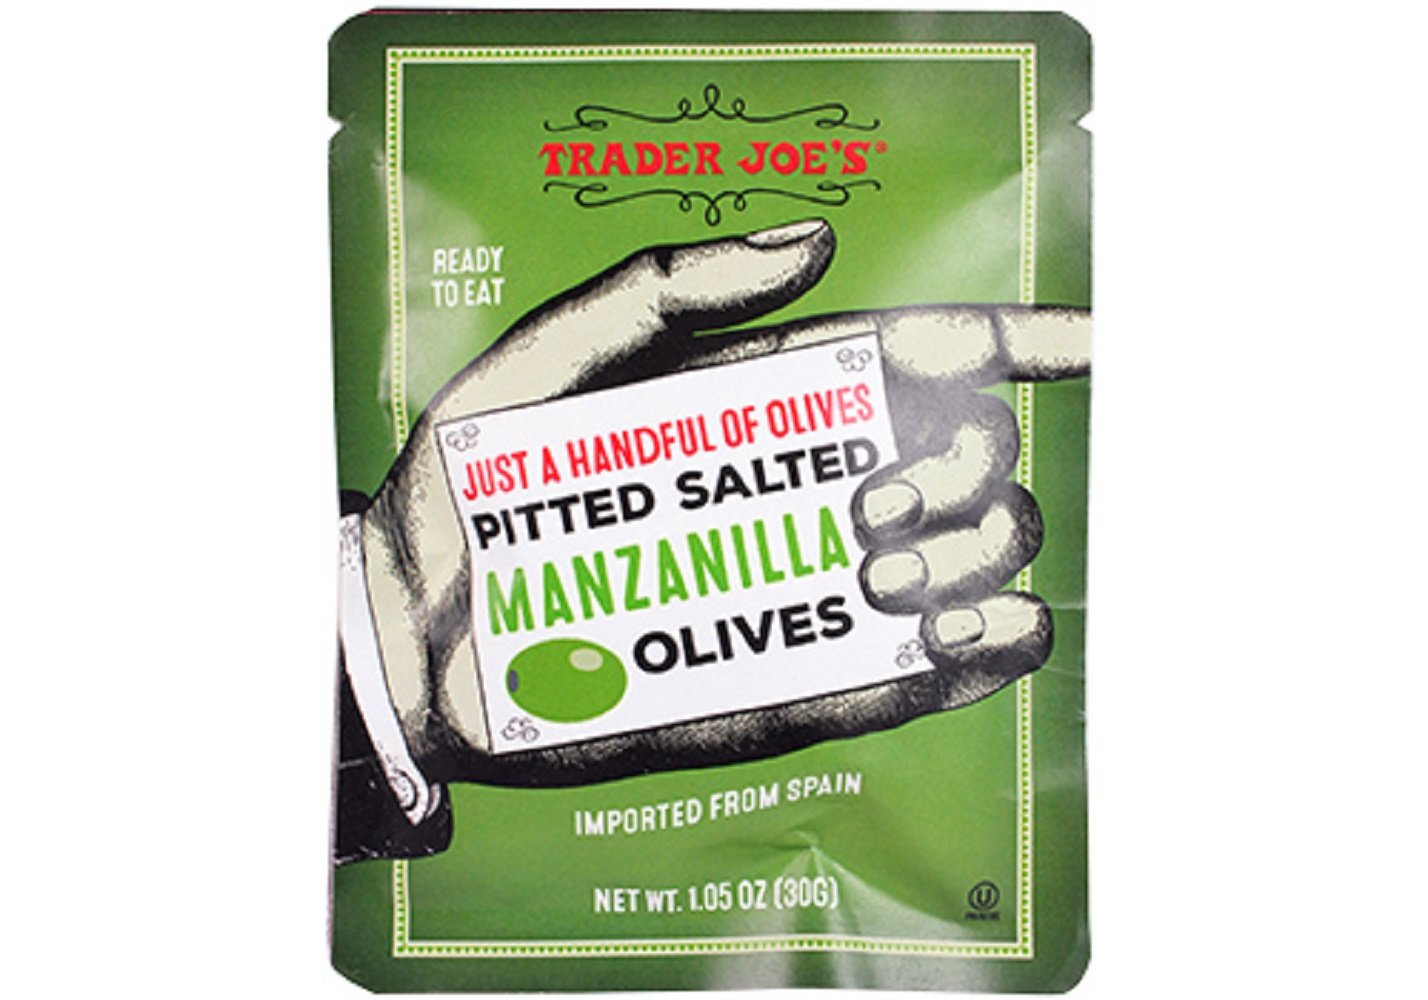 Trader Joe's Just a Handful of Pitted Salted Manzanilla Olives (4-pack), 1.05 oz each by Trader Joe's